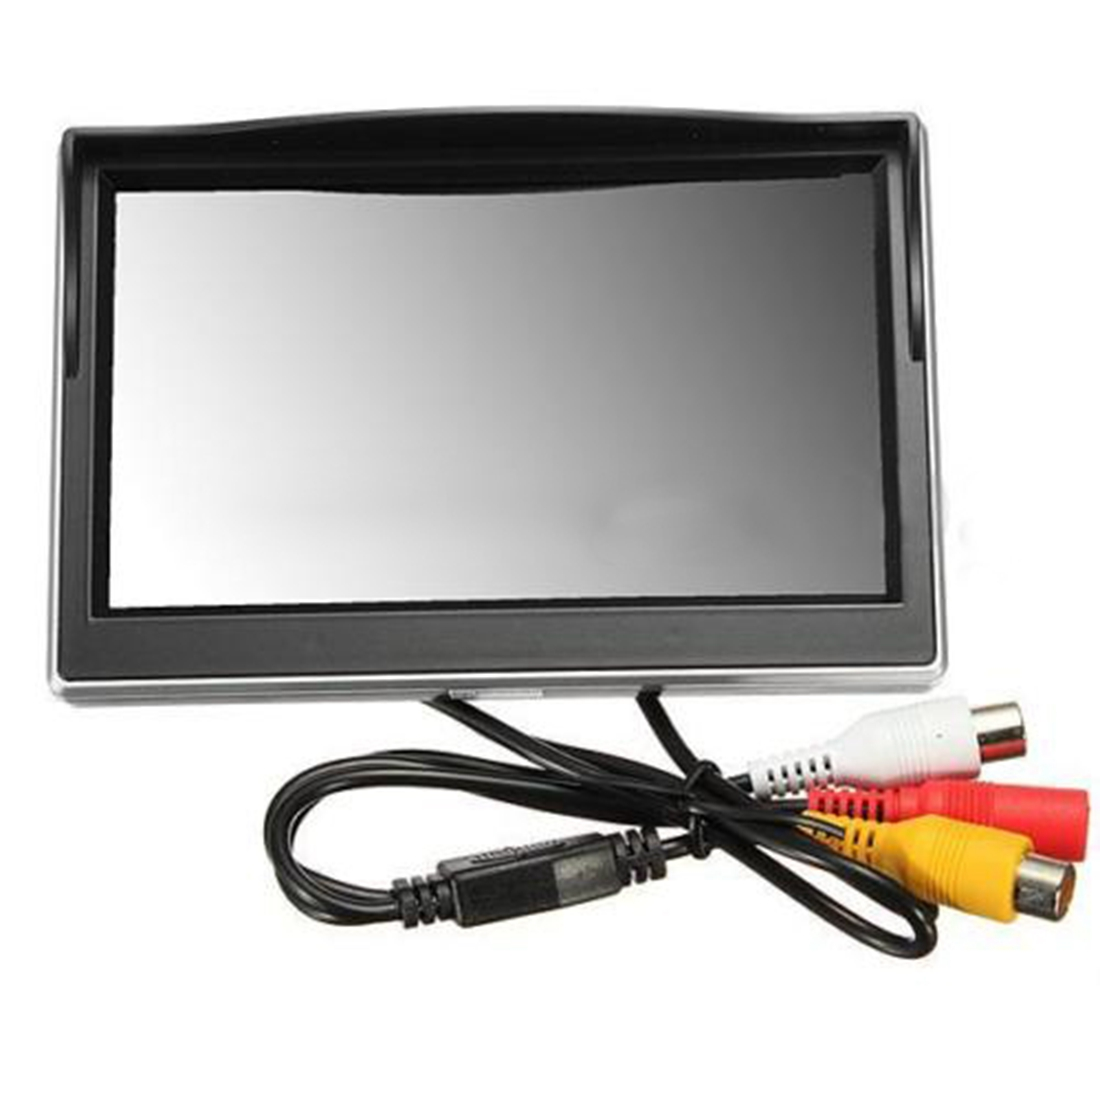 NEW 5 800*480 TFT LCD HD Screen Monitor for Car Rear Rearview Backup Camera high resolution 5 colorful screen tft lcd car rearview mirror monitor 800 480 resolution dc 12v car monitor for dvd camera vcr